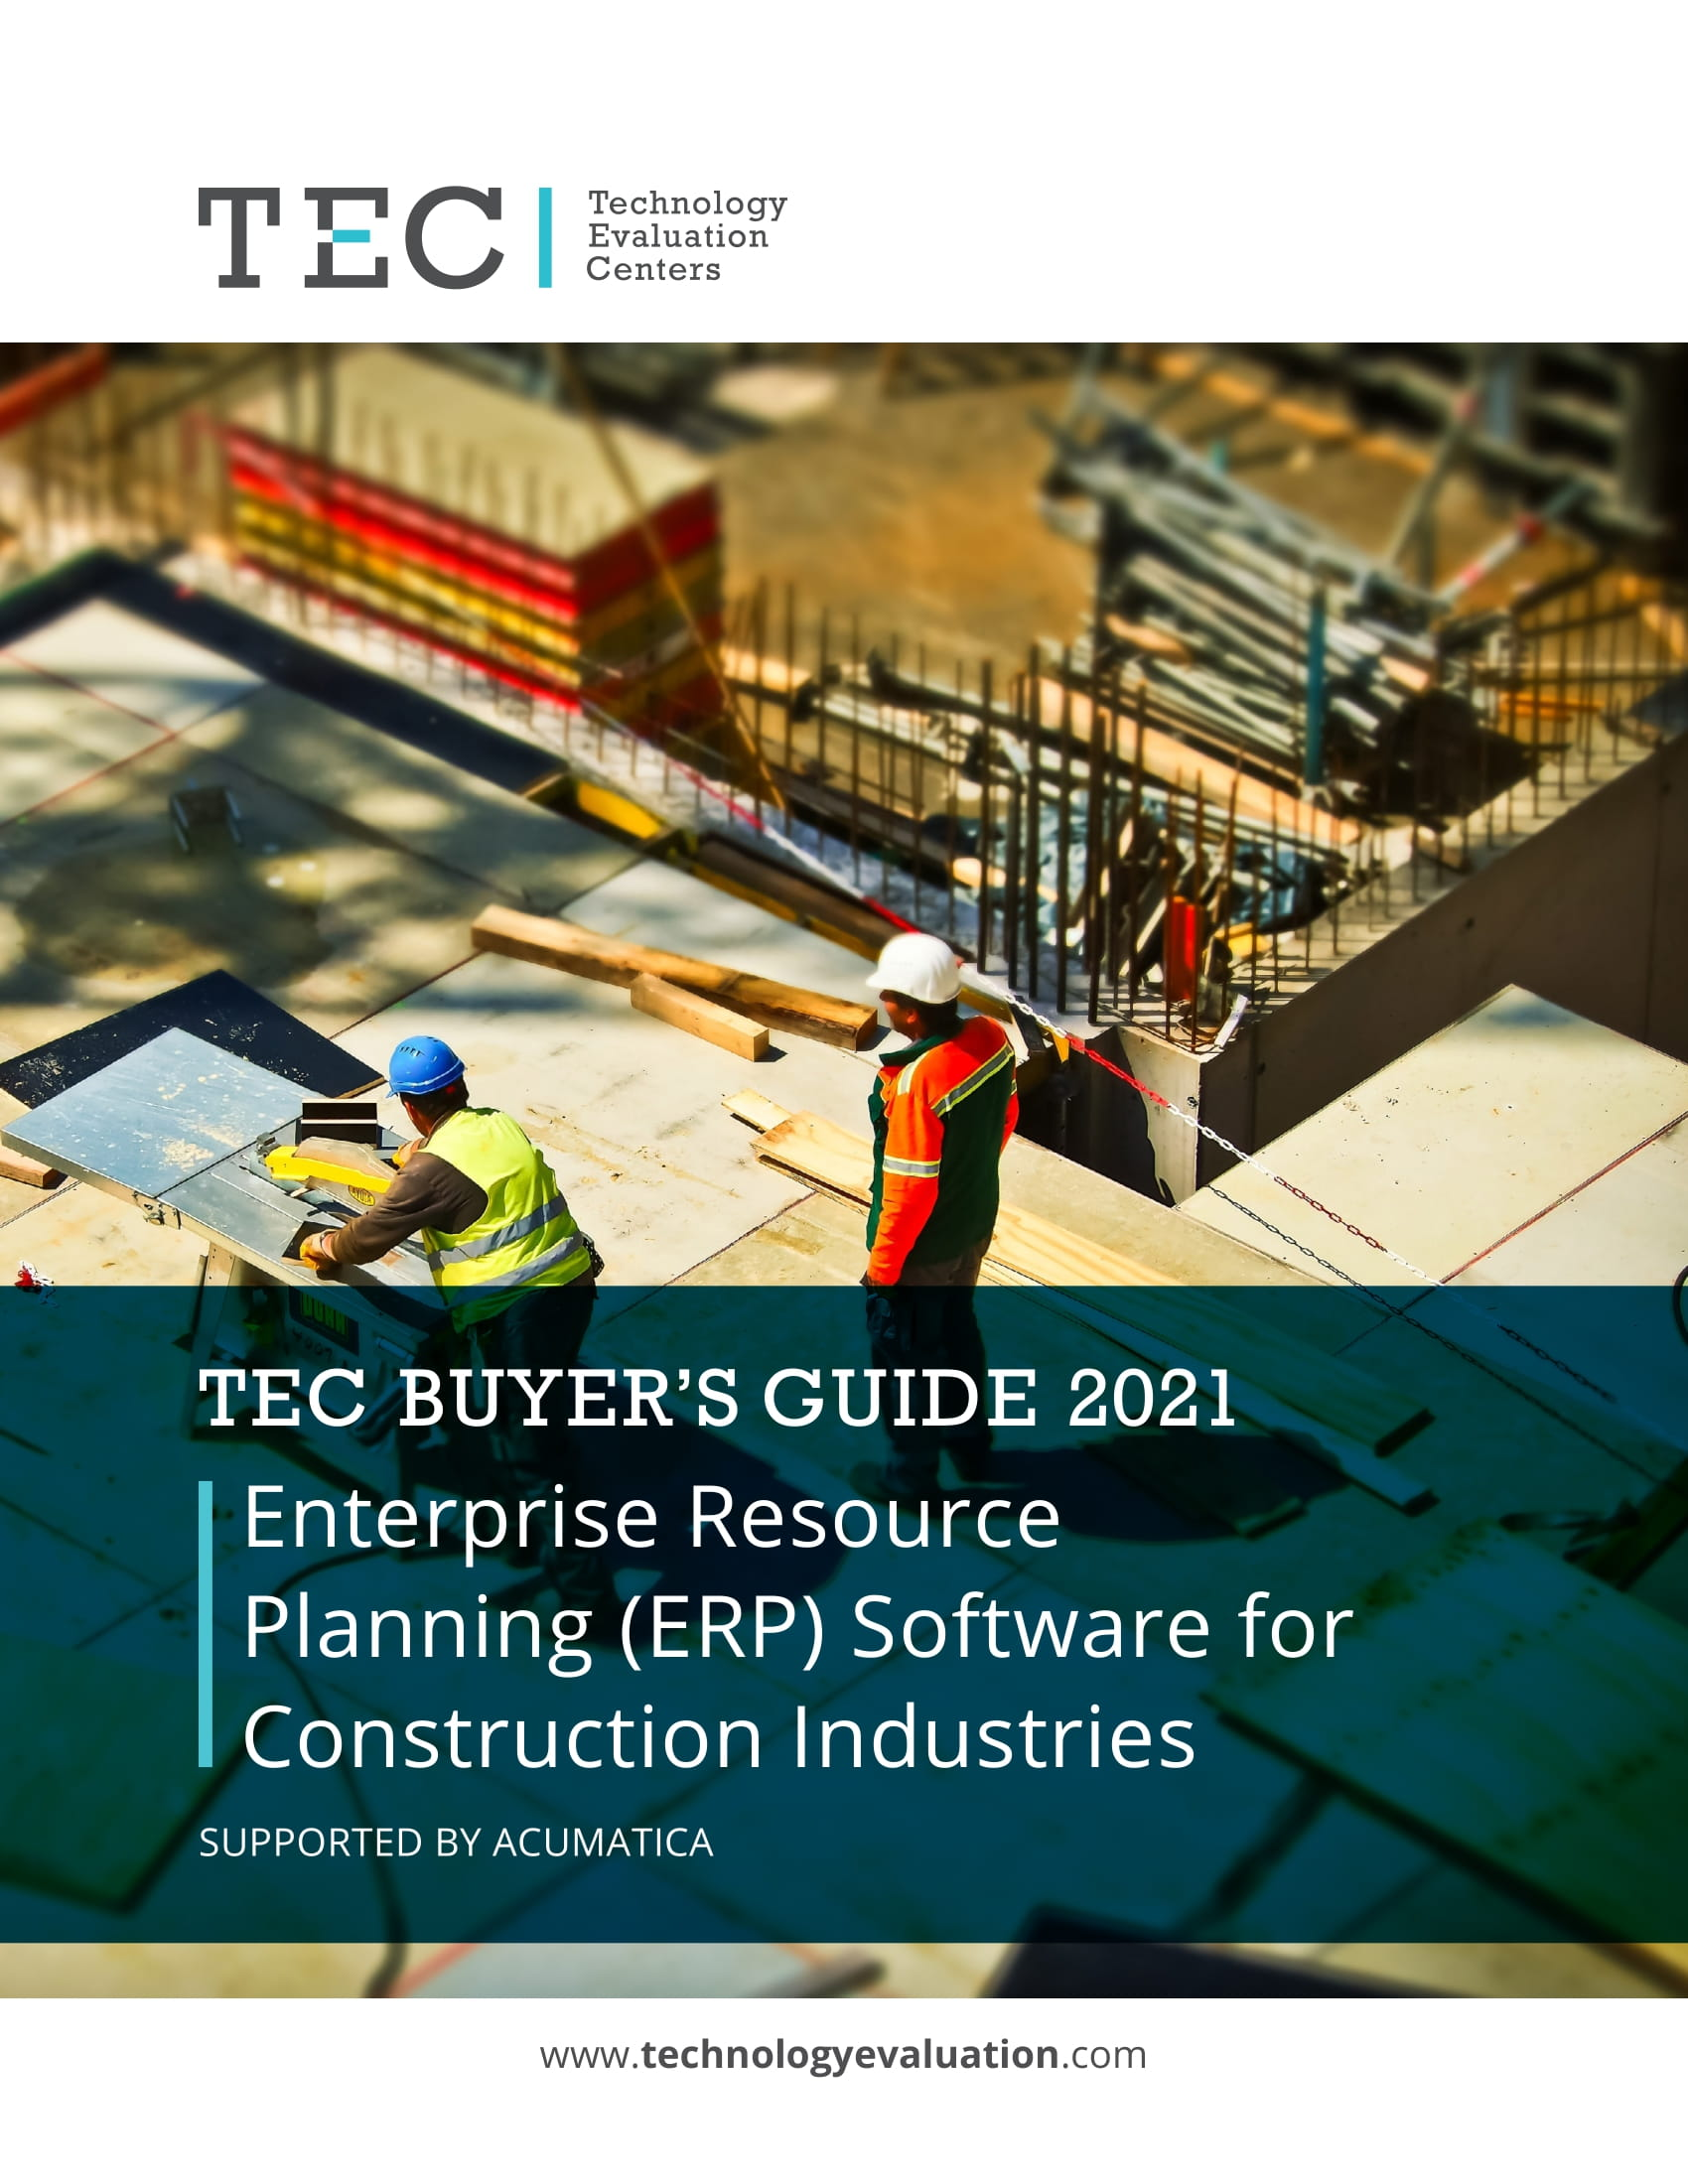 TEC 2021 ERP Software for Construction Industries Buyer's Guide